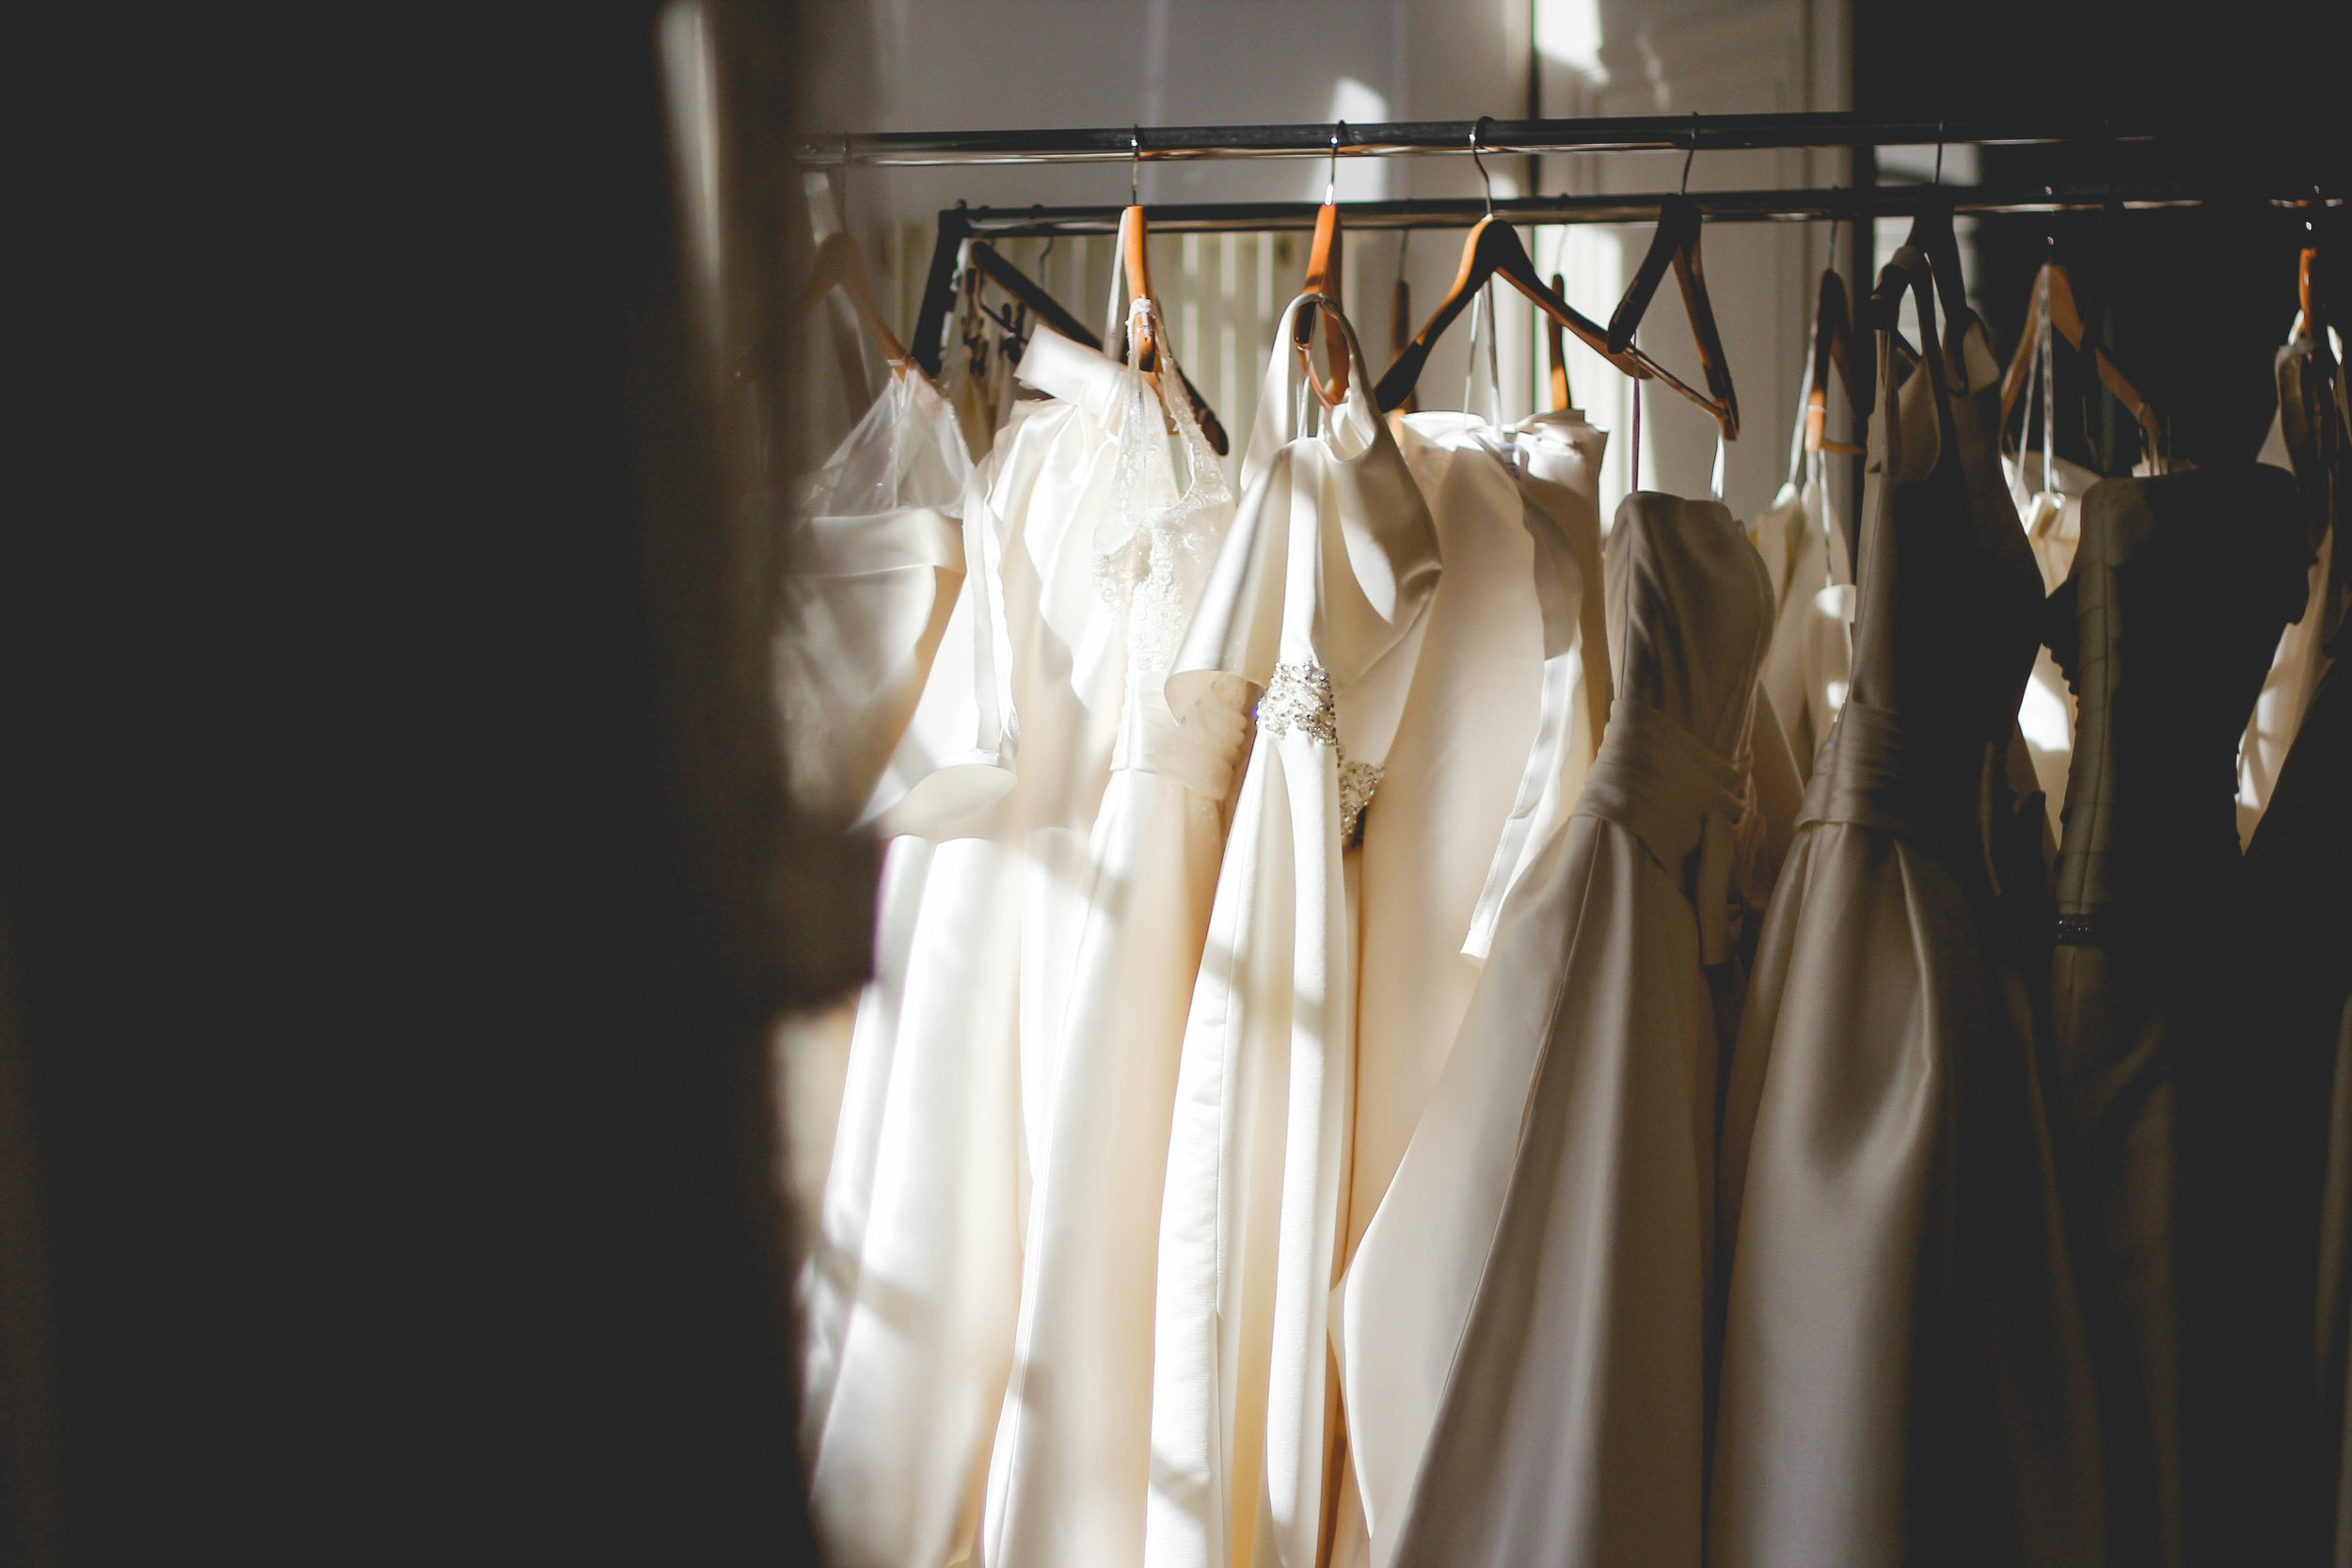 It's Clean and Always Organized - At Élsca, you don't need to worry about having to try on dirty or damaged wedding gowns. We pride ourselves in taking such special care of all of our pieces because we want you to feel like you get a real feel for the gowns that we offer.It's notorious that at some larger, corporate-owned bridal stores, they struggle with keeping their gowns clean just from the magnitude of the exposure to customers.